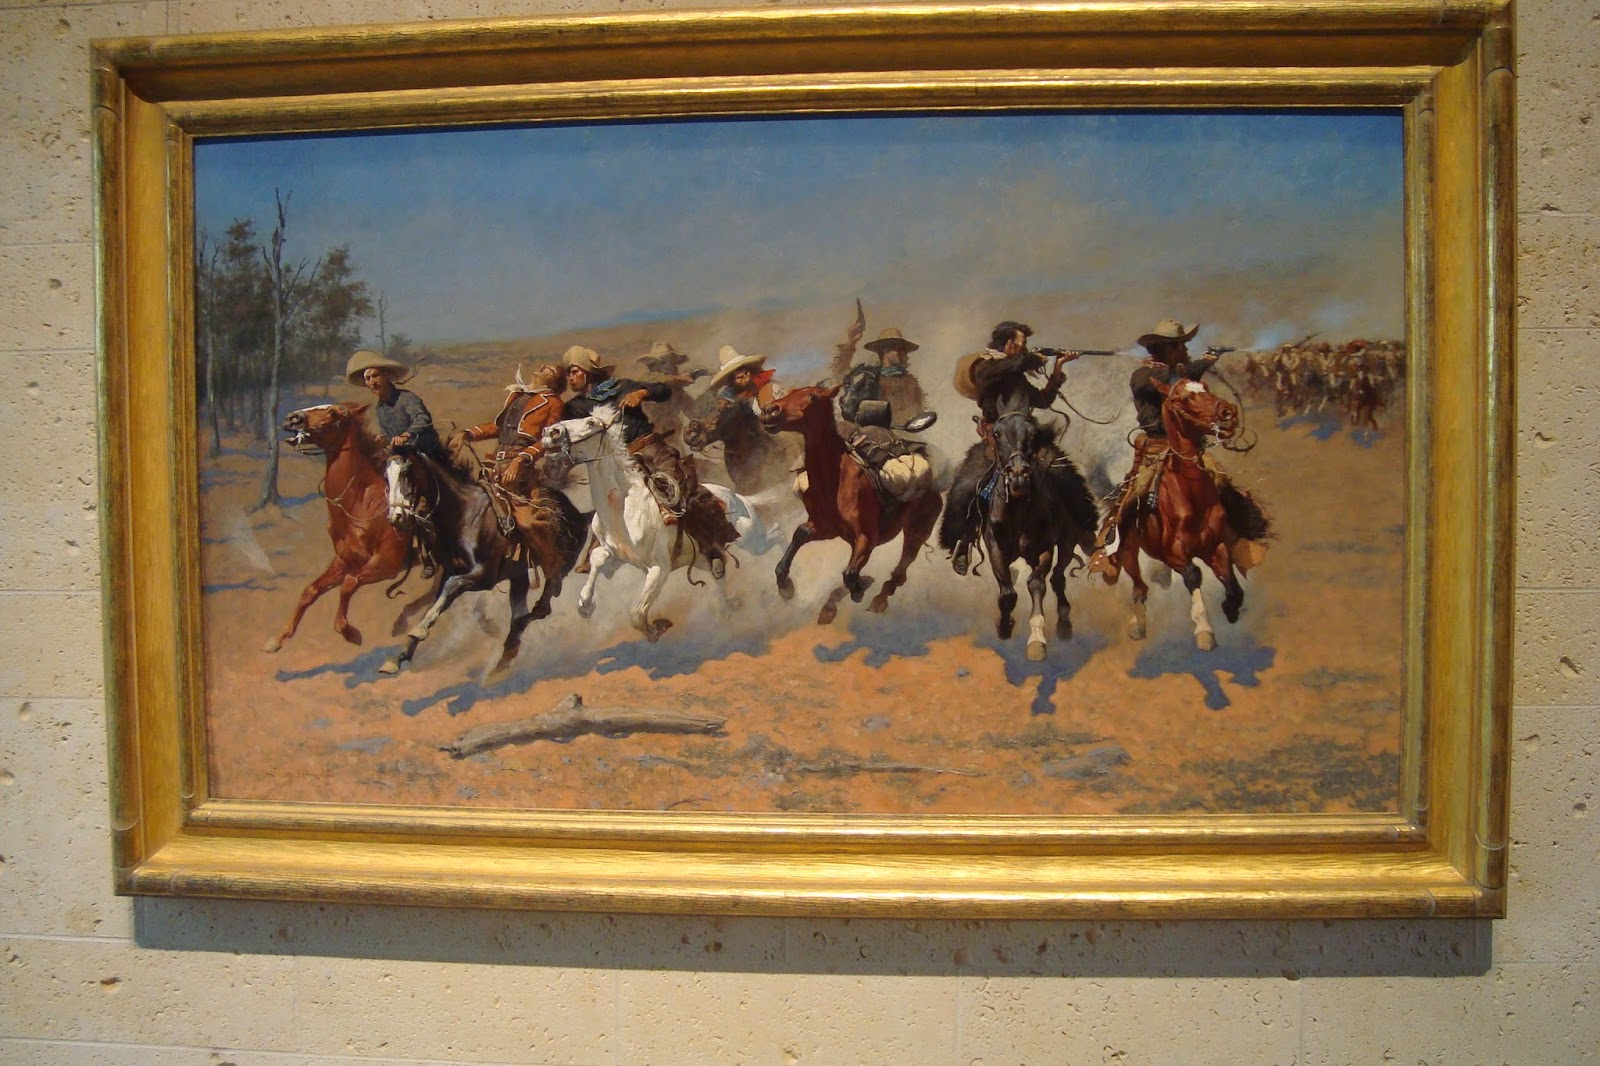 western and non western art essay How do you feel non-western art differs from art created in western european culture in our study of art history thus far, how do you feel non-western art differs from art created in western european culture.